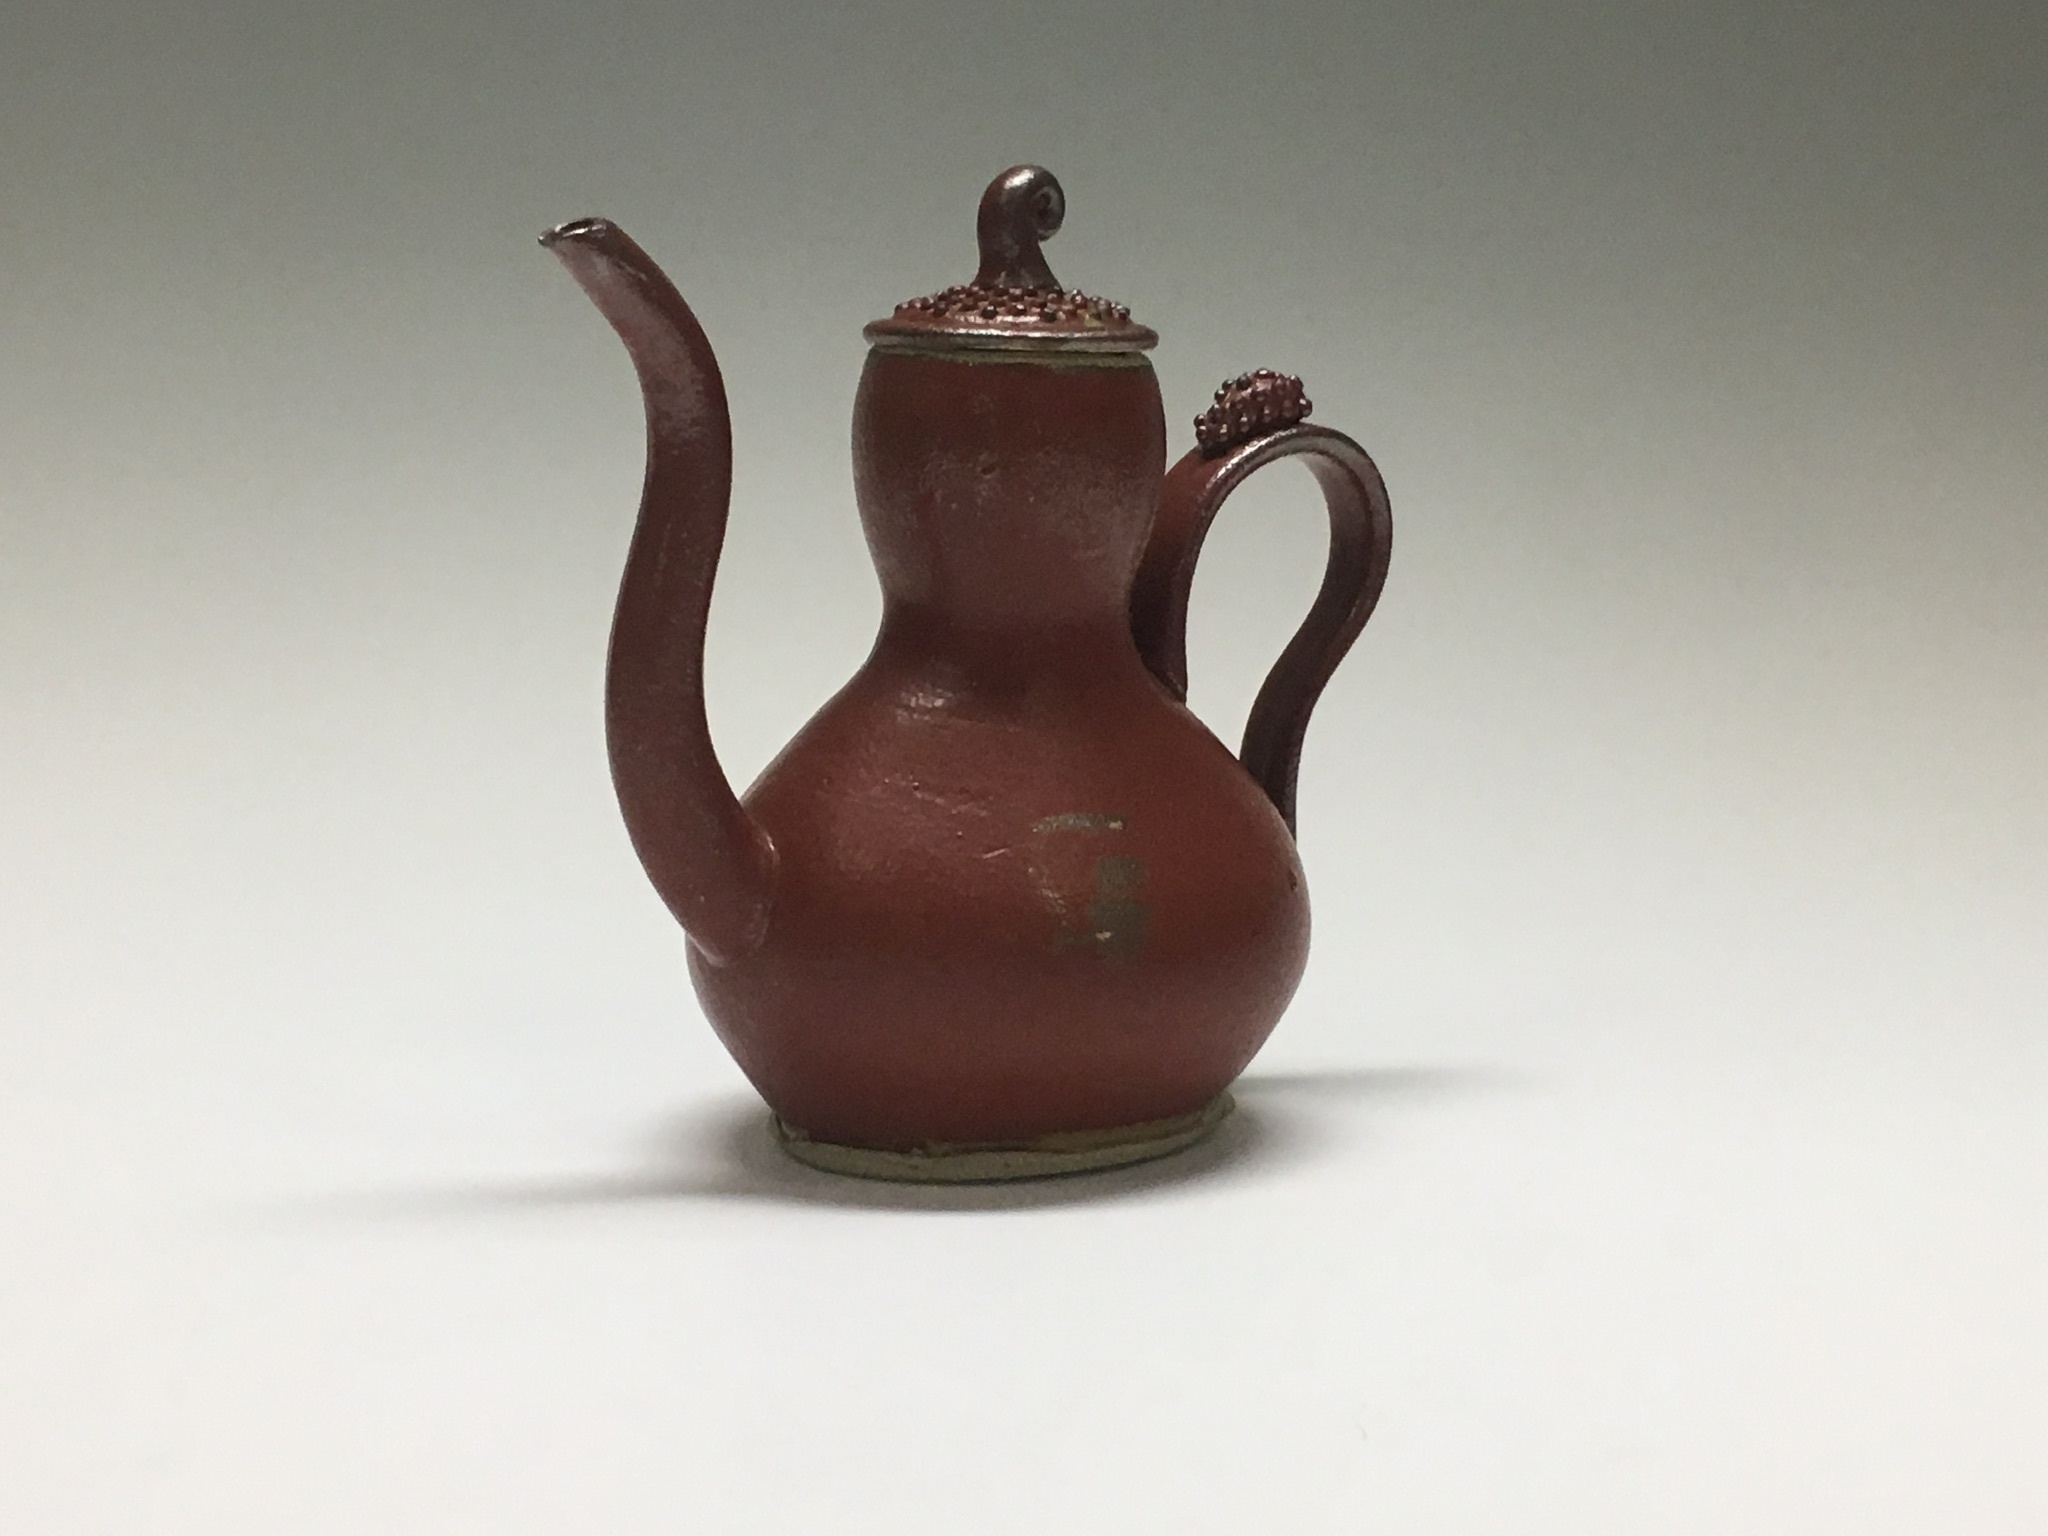 A photograph of a tall, red ceramic teapot